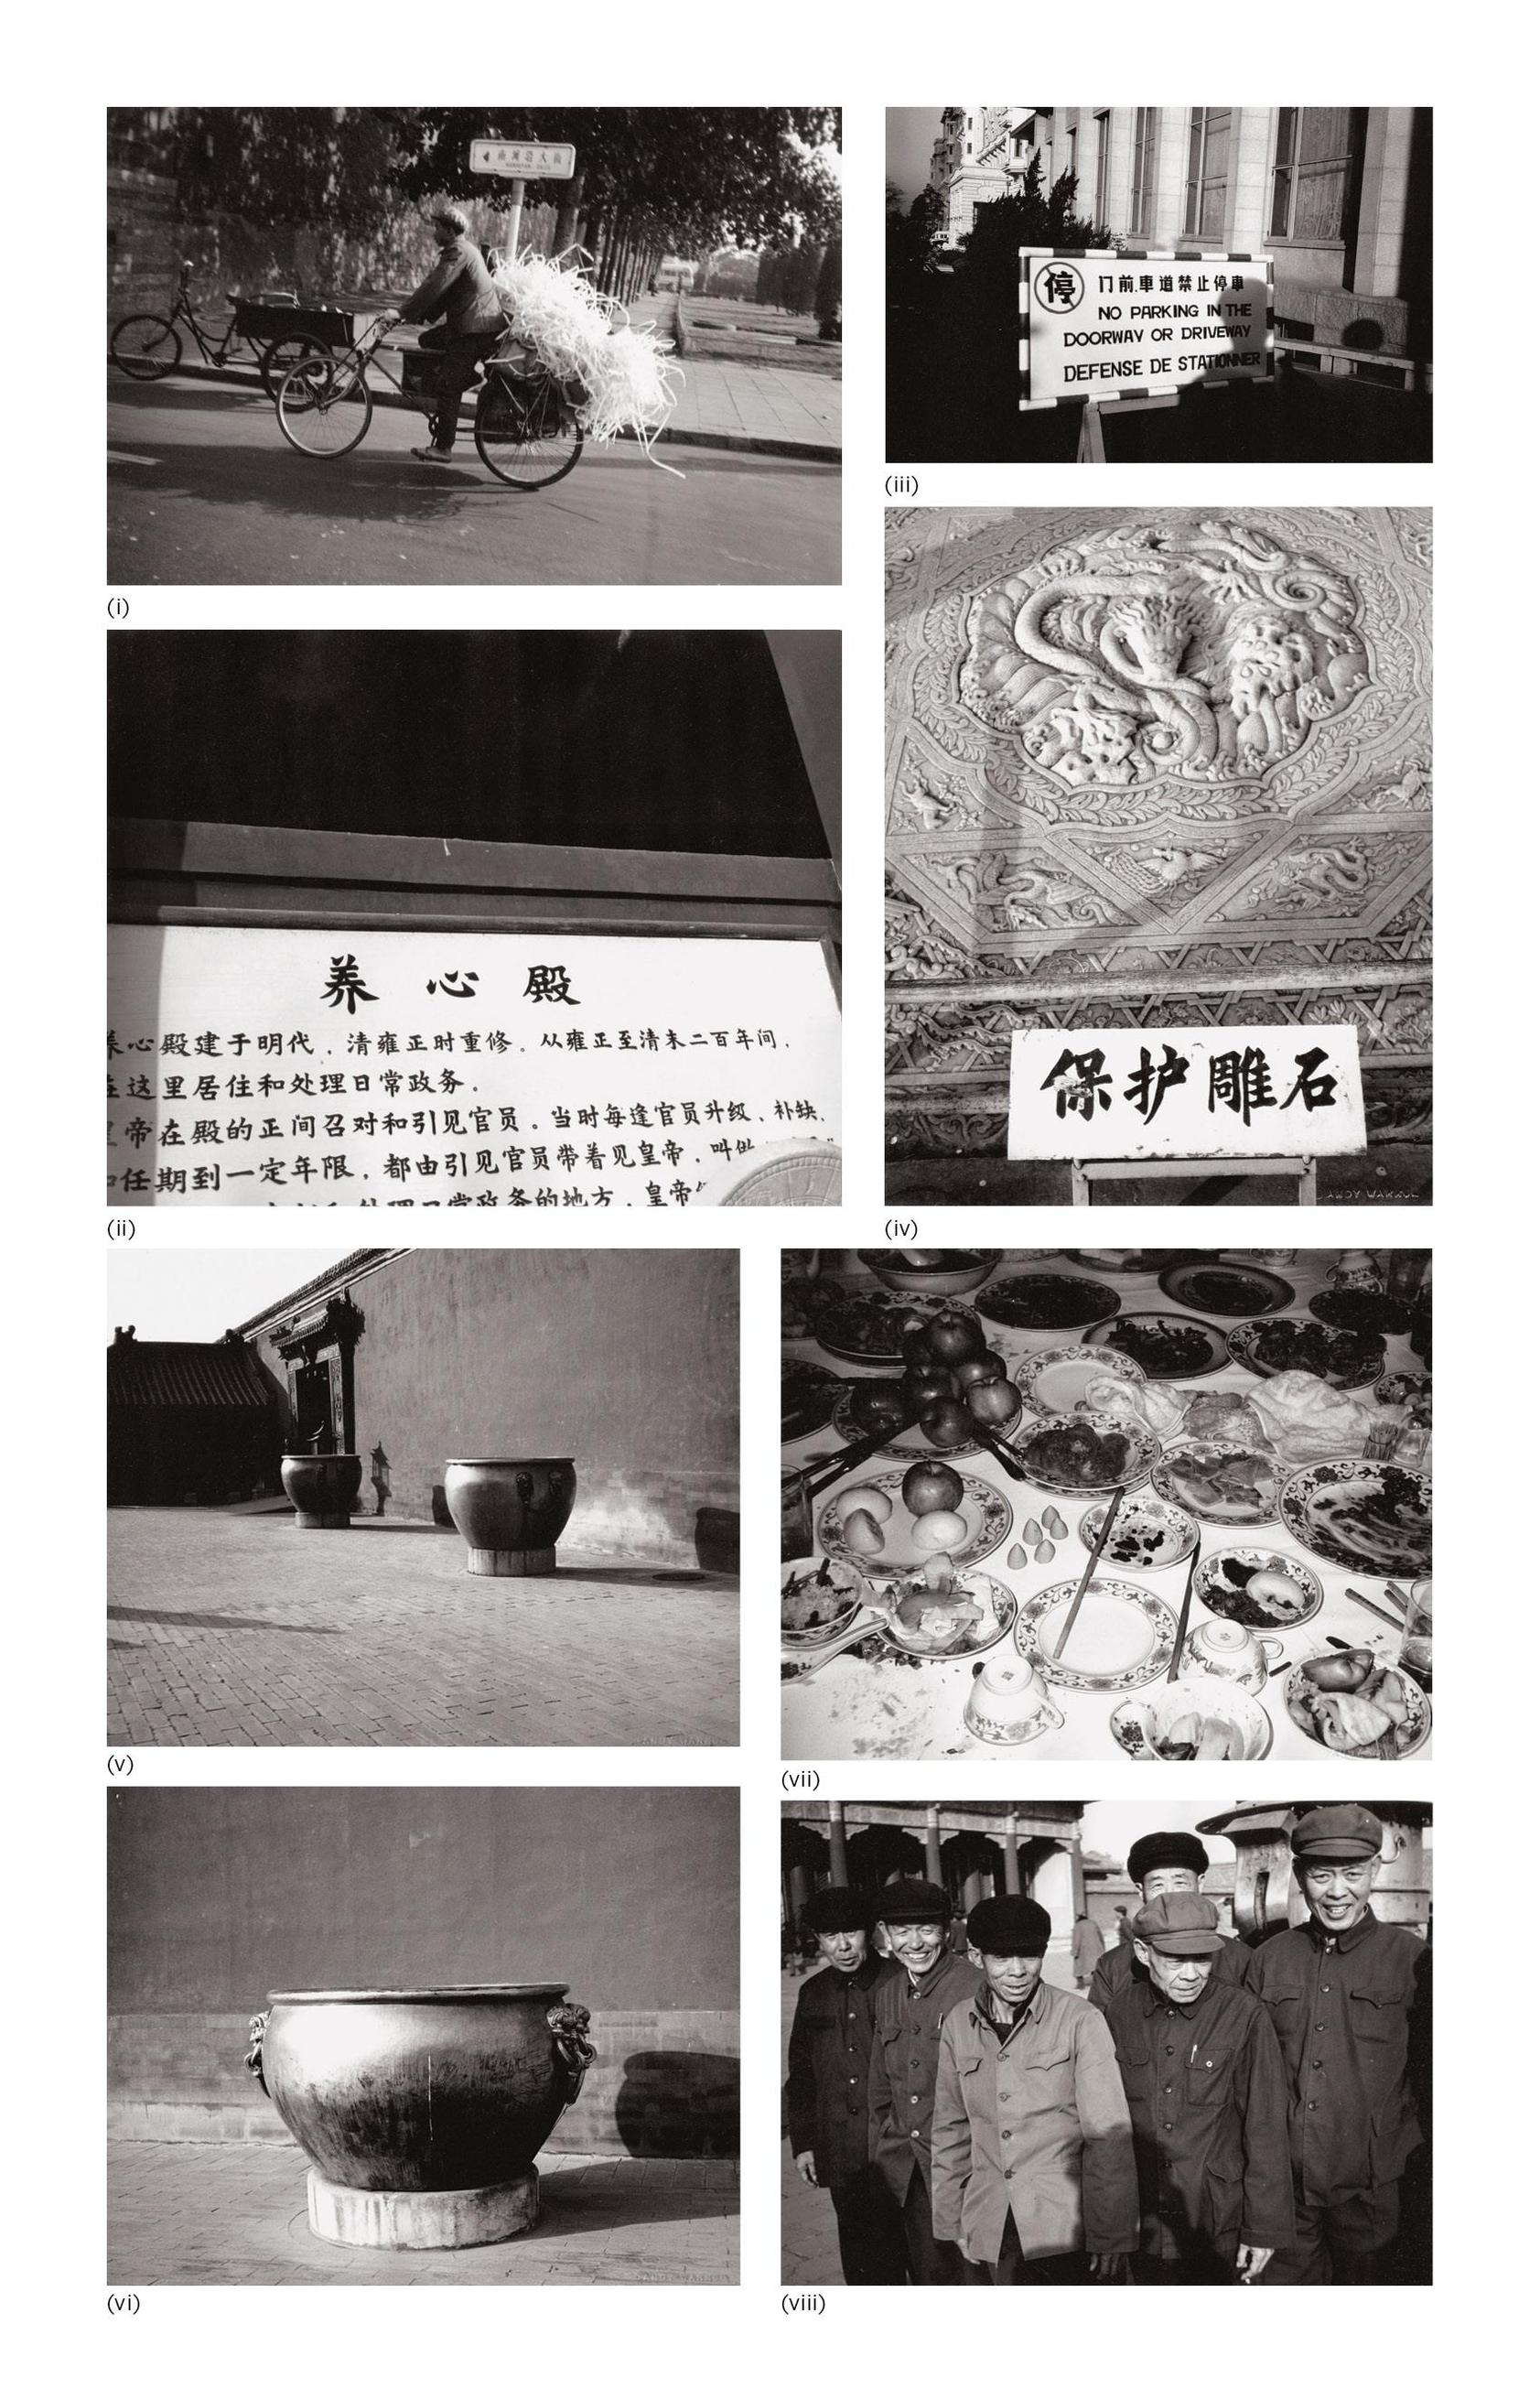 Andy Warhol-Eight Works: (I) Street Scene (Man On Bicycle); (II) Sign In Chinese; (III) 'No Parking' Sign; (IV) Chinese Sculpture; (V) Temple; (VI) Urn; (VII) Restaurant Table; (VIII) Men-1982